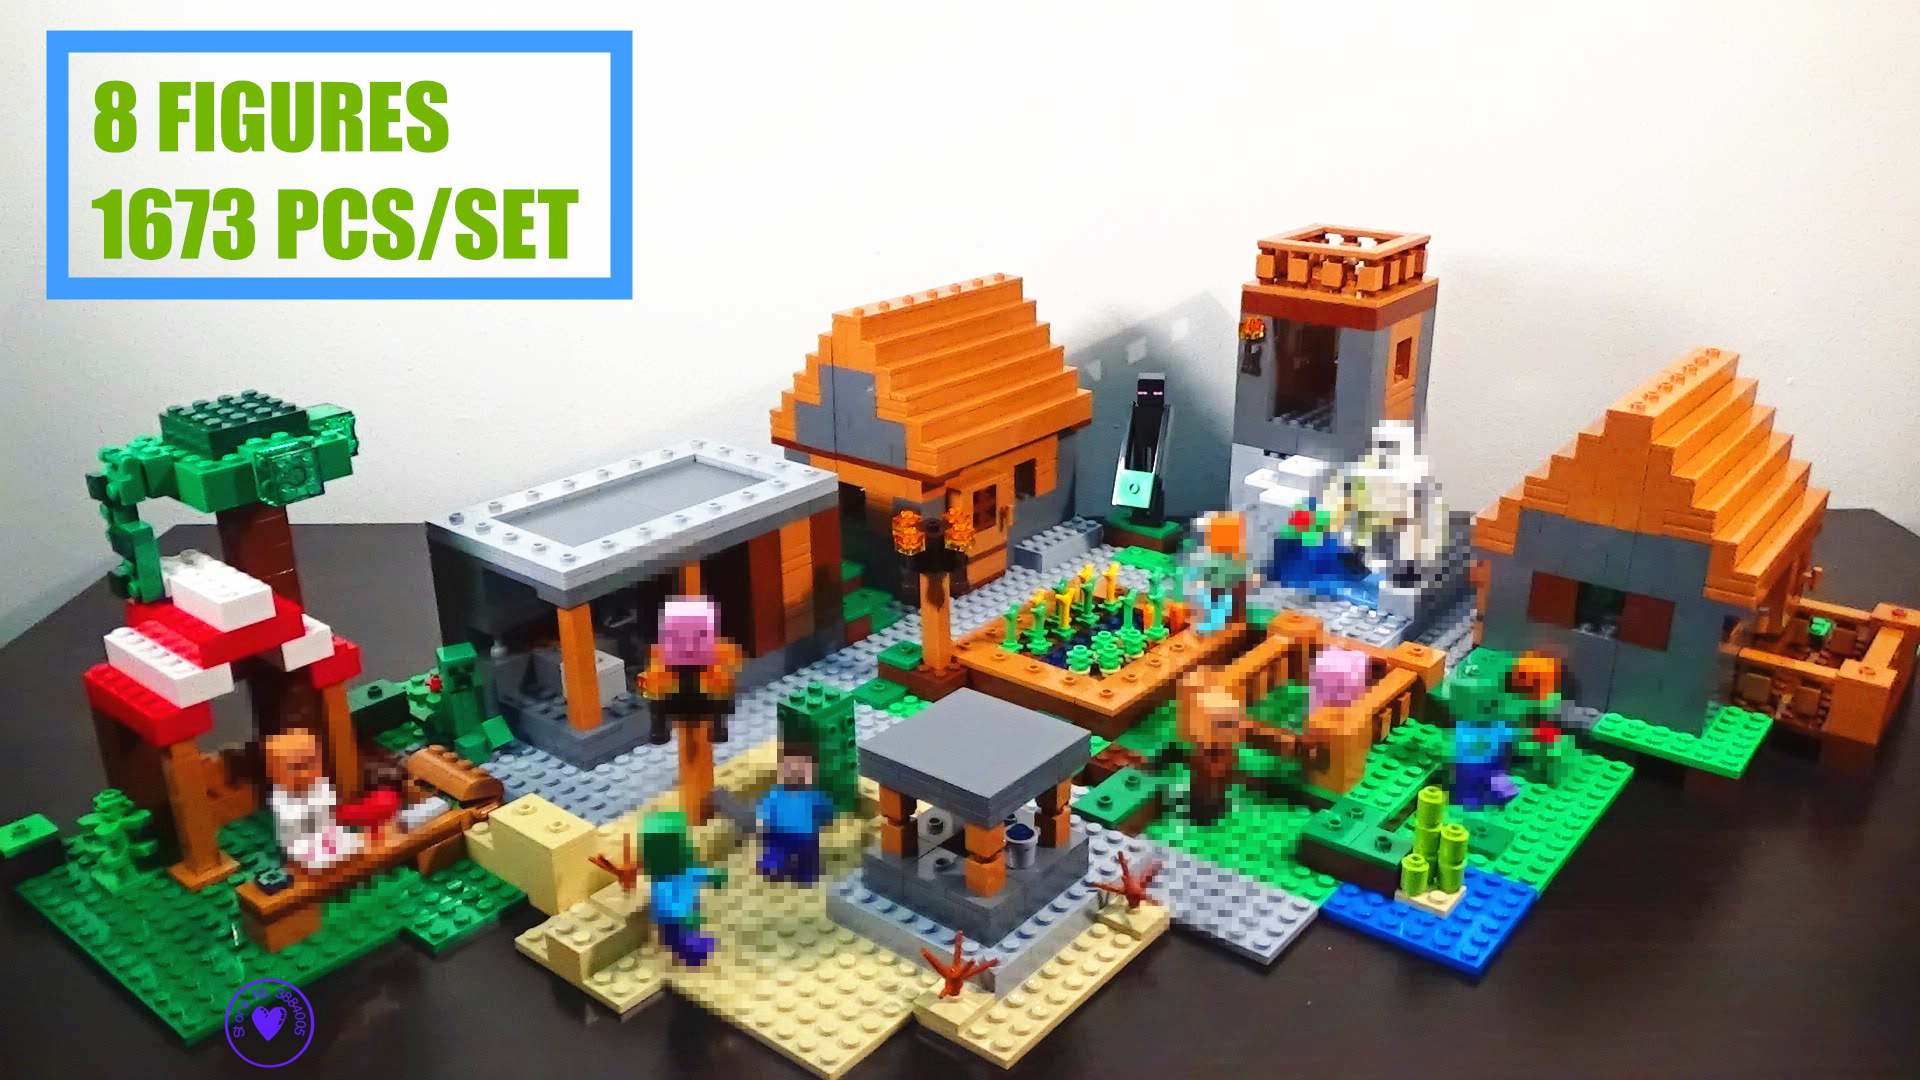 8sets Lot Minecraft Toys Blocks Action Figures With Weapons Assembly Assembling Building Block Toy New My Worlds Village Fit Legoings Minecrafted Model Diy Bricks 21128